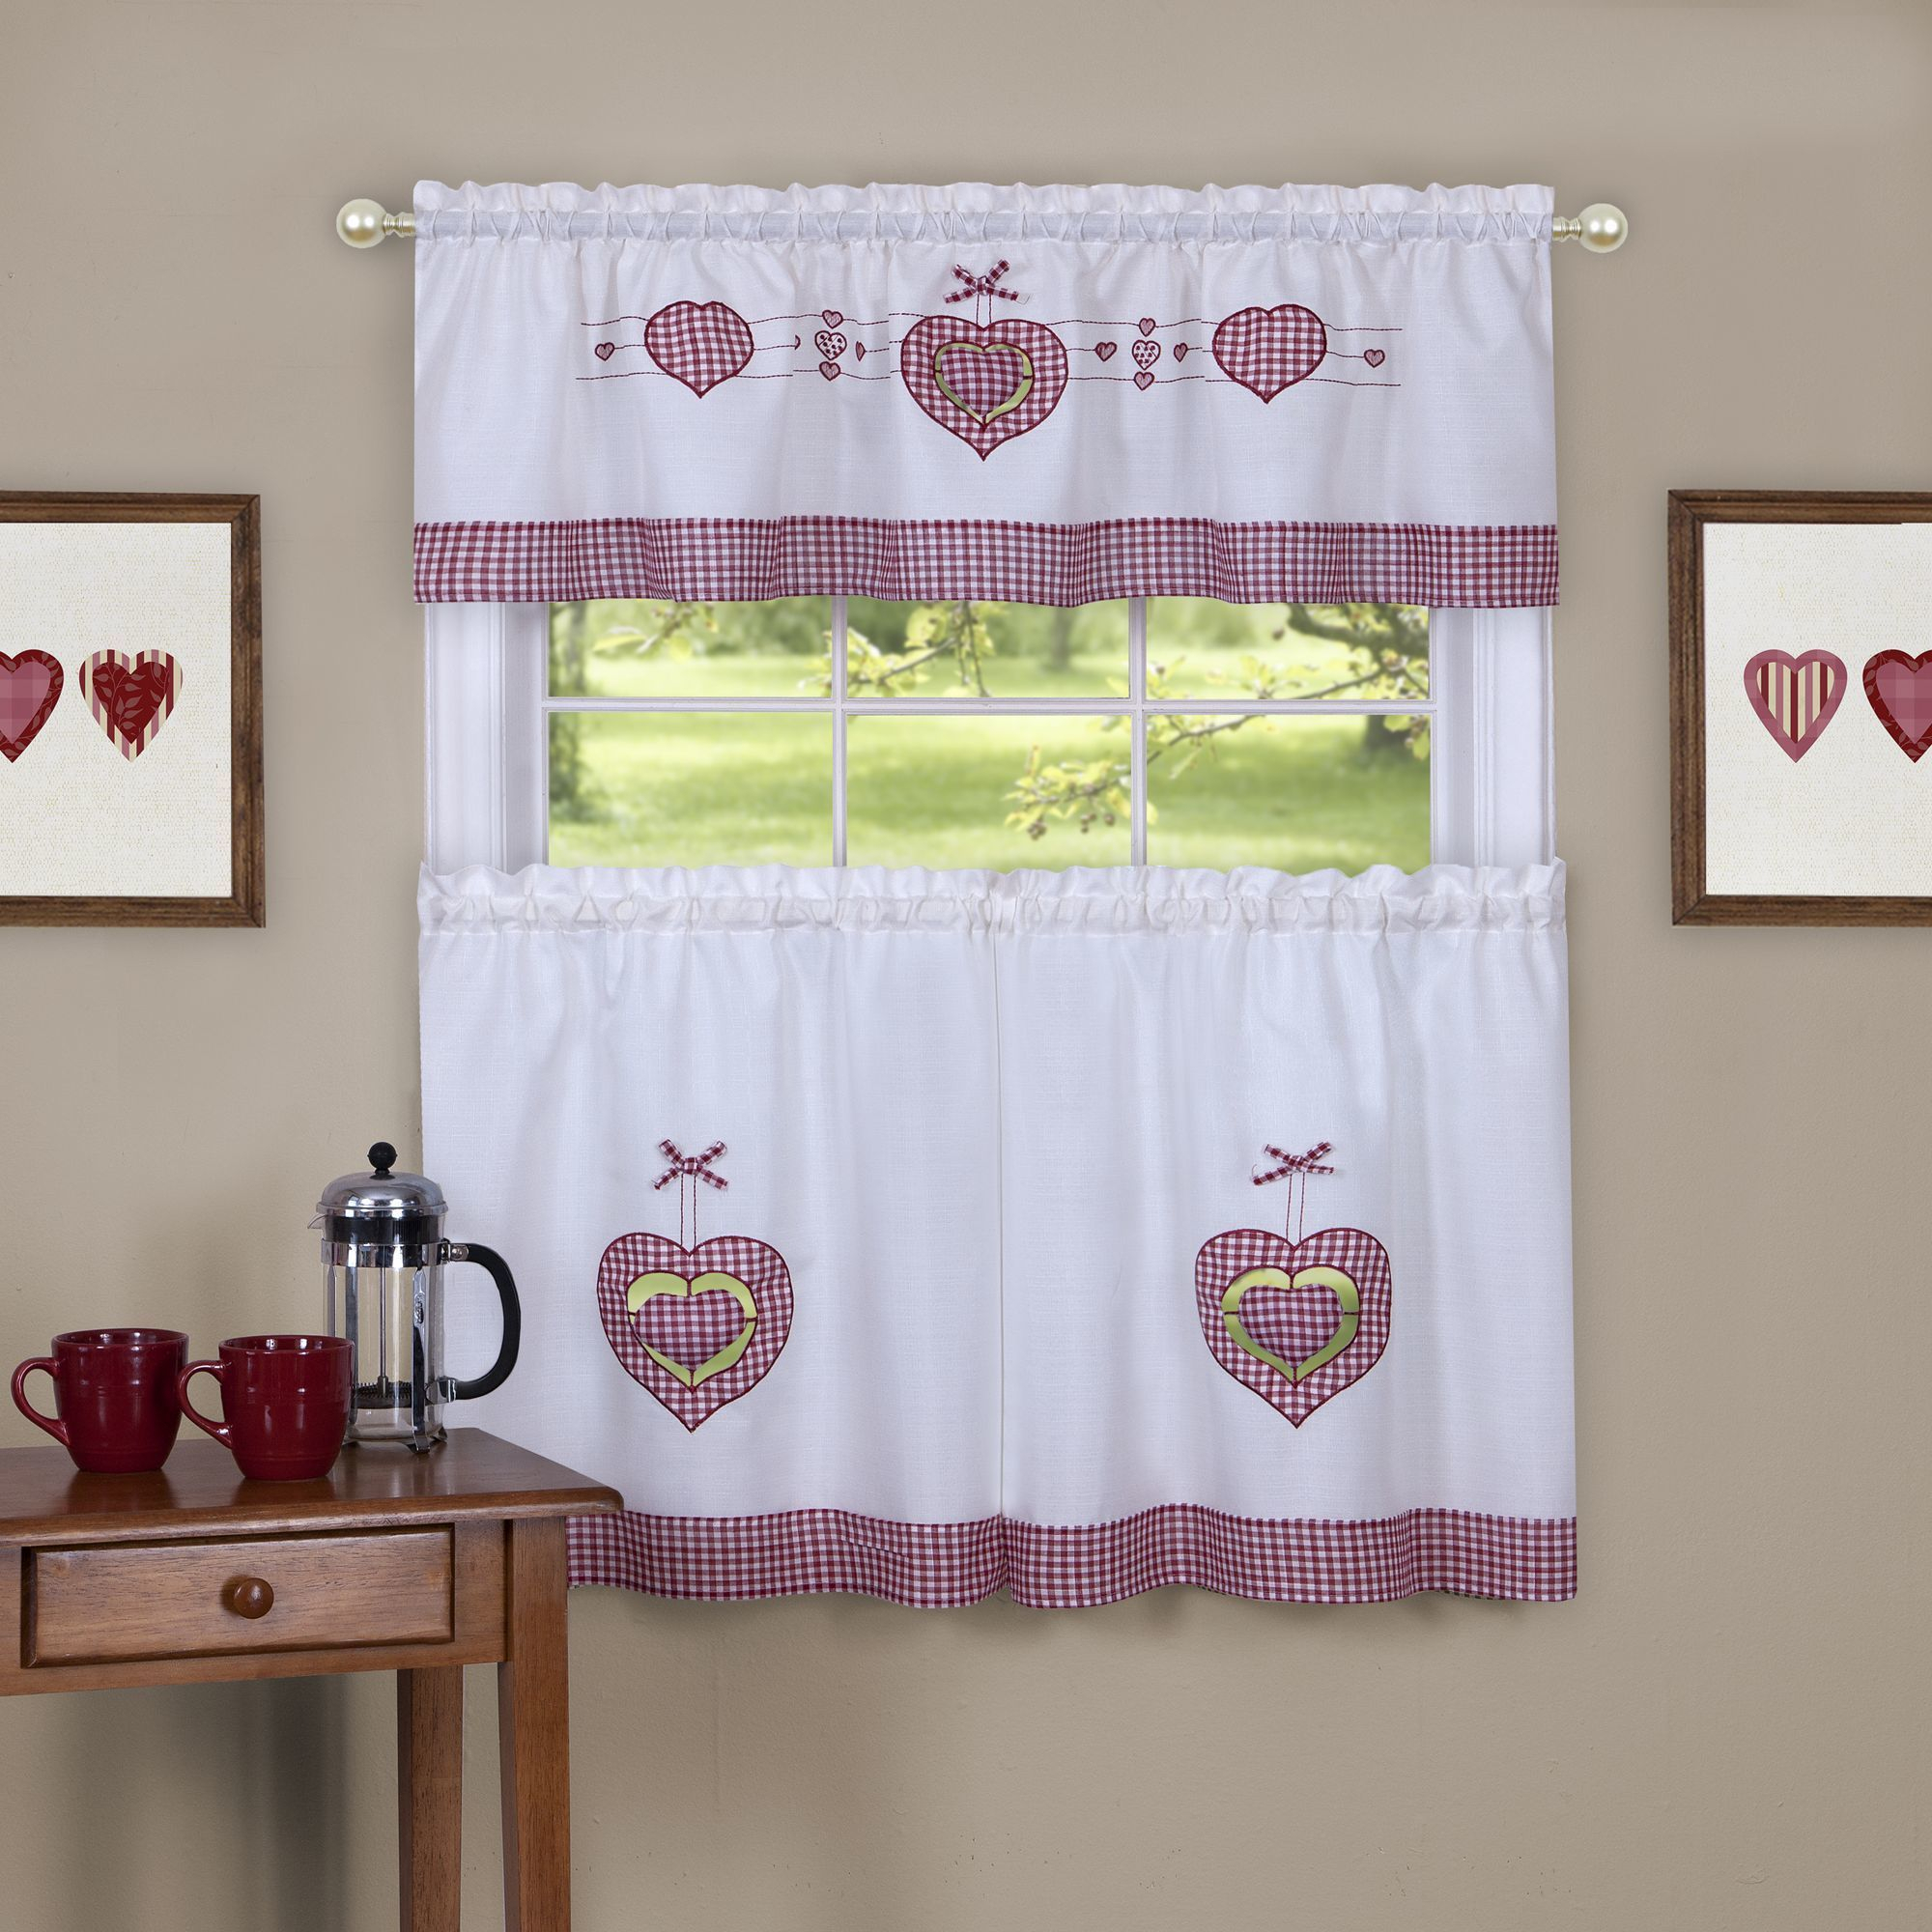 Gingham Hearts Multicolor Embellished Tier And Valance Window Curtain Set Intended For Coastal Tier And Valance Window Curtain Sets (View 15 of 20)